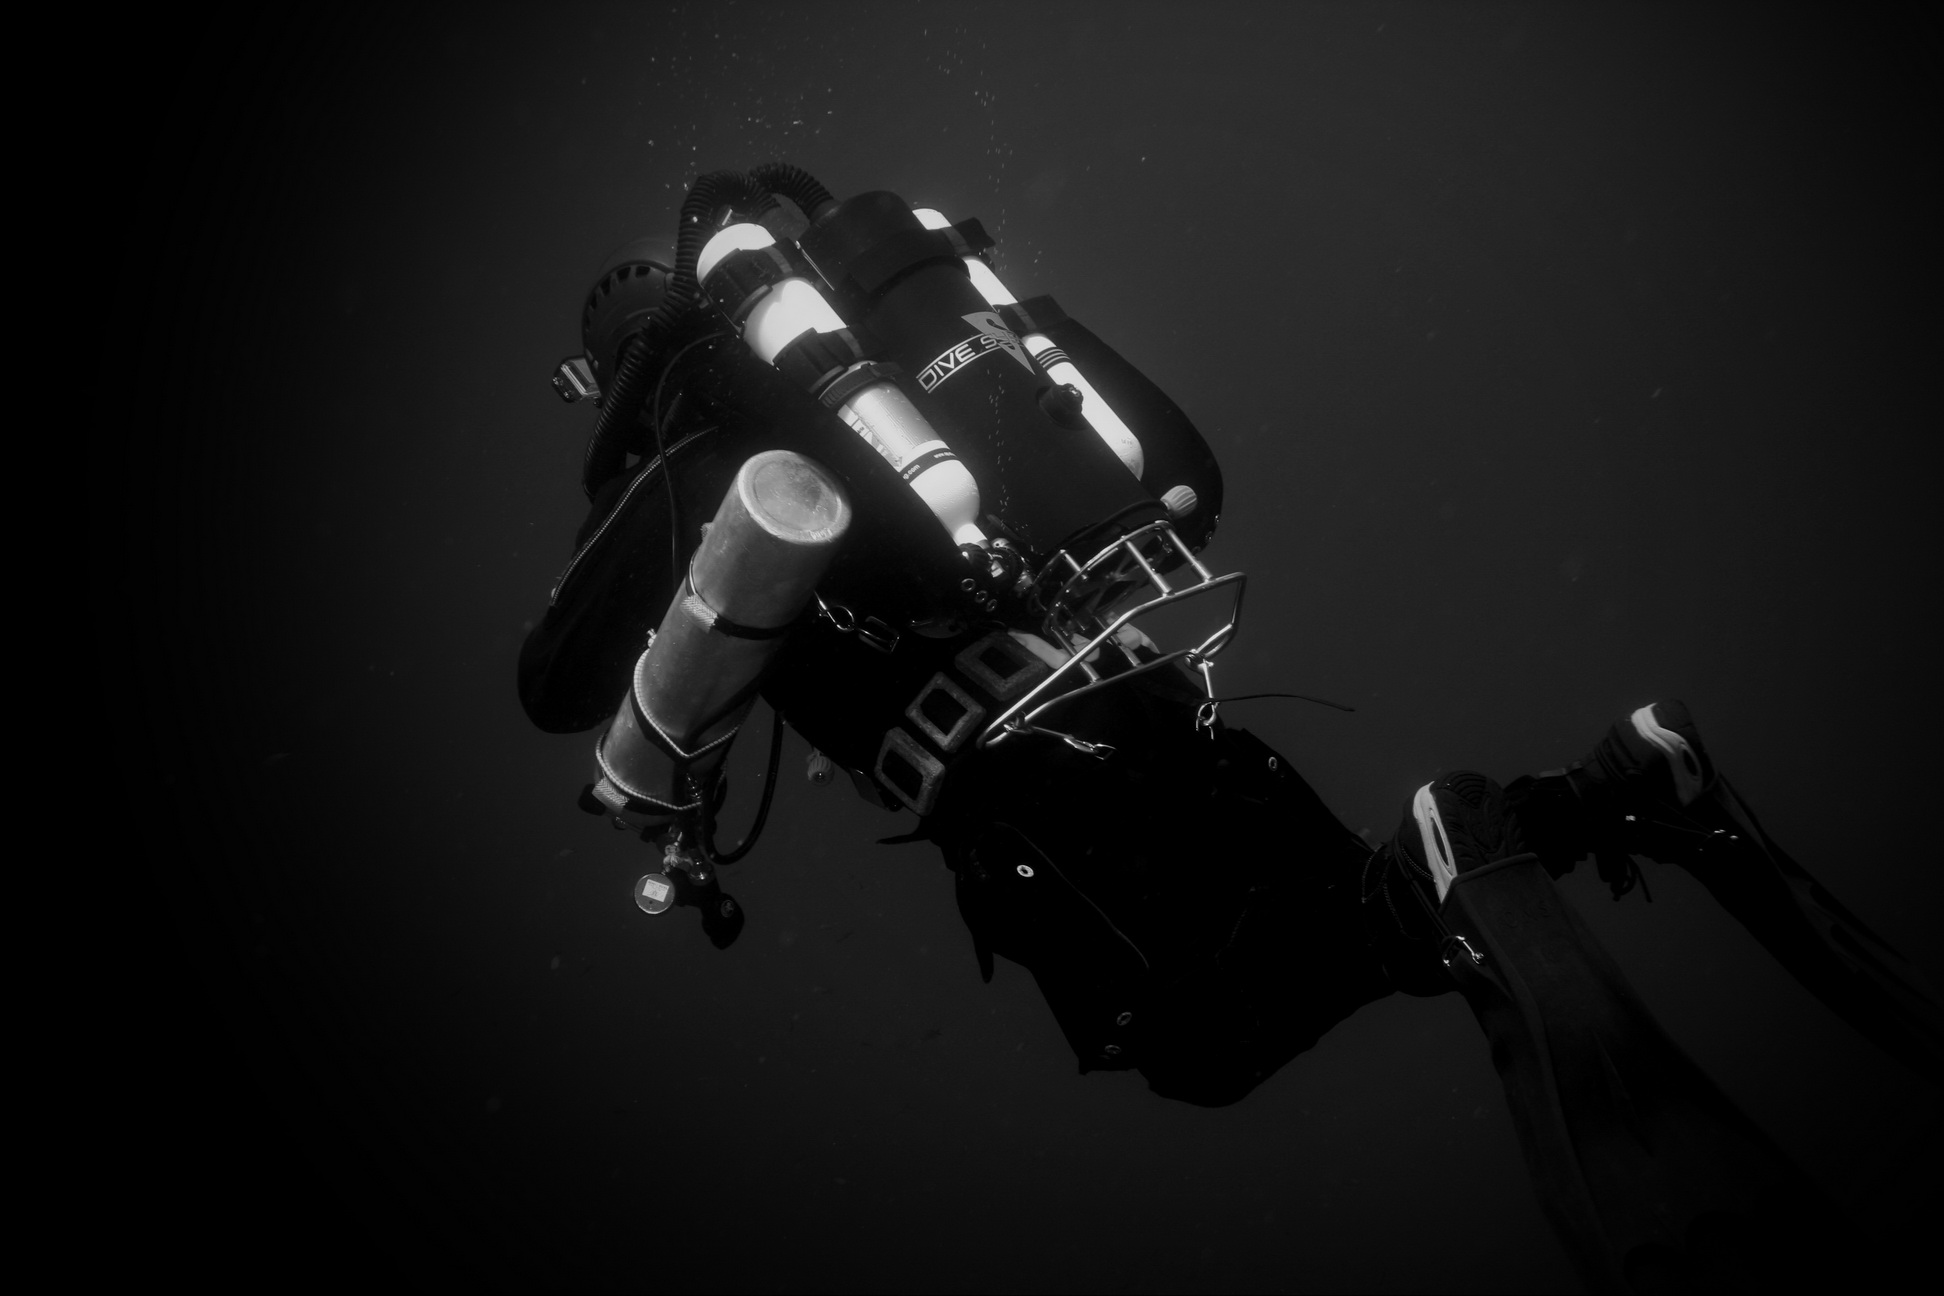 Dive-Systems-Proteus-P2-Backmount-Rebreather-5957.jpg